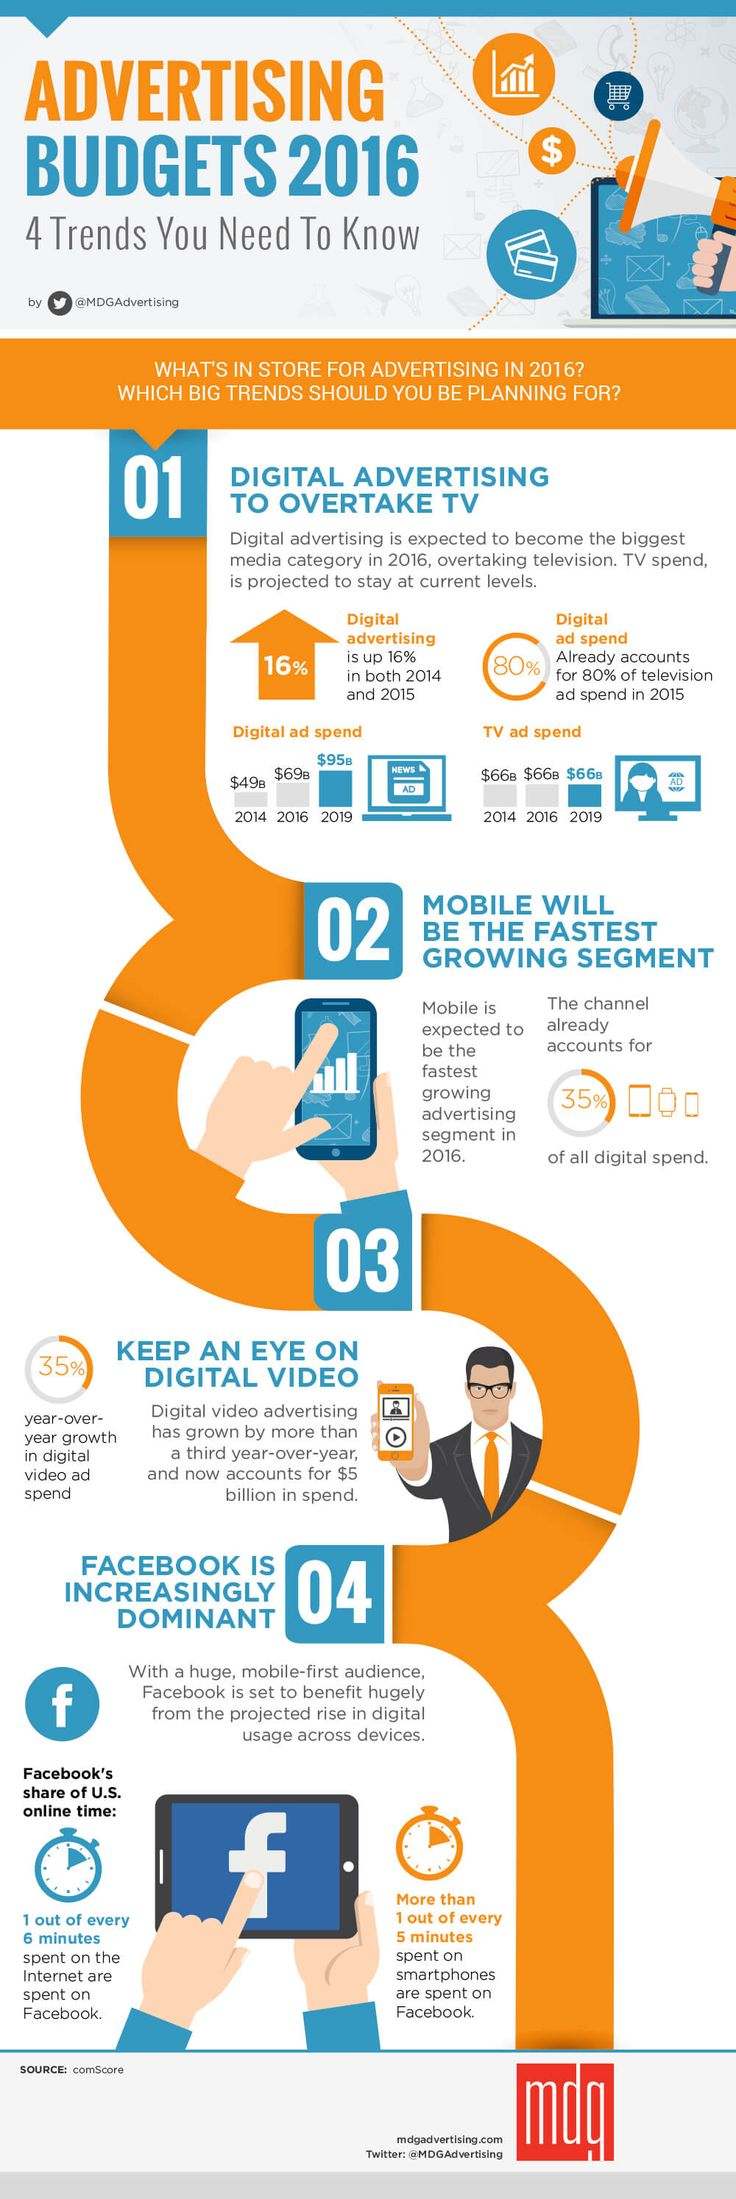 Digital Advertising Budgets 2016: 4 Trends You Need To Know - #Infographic